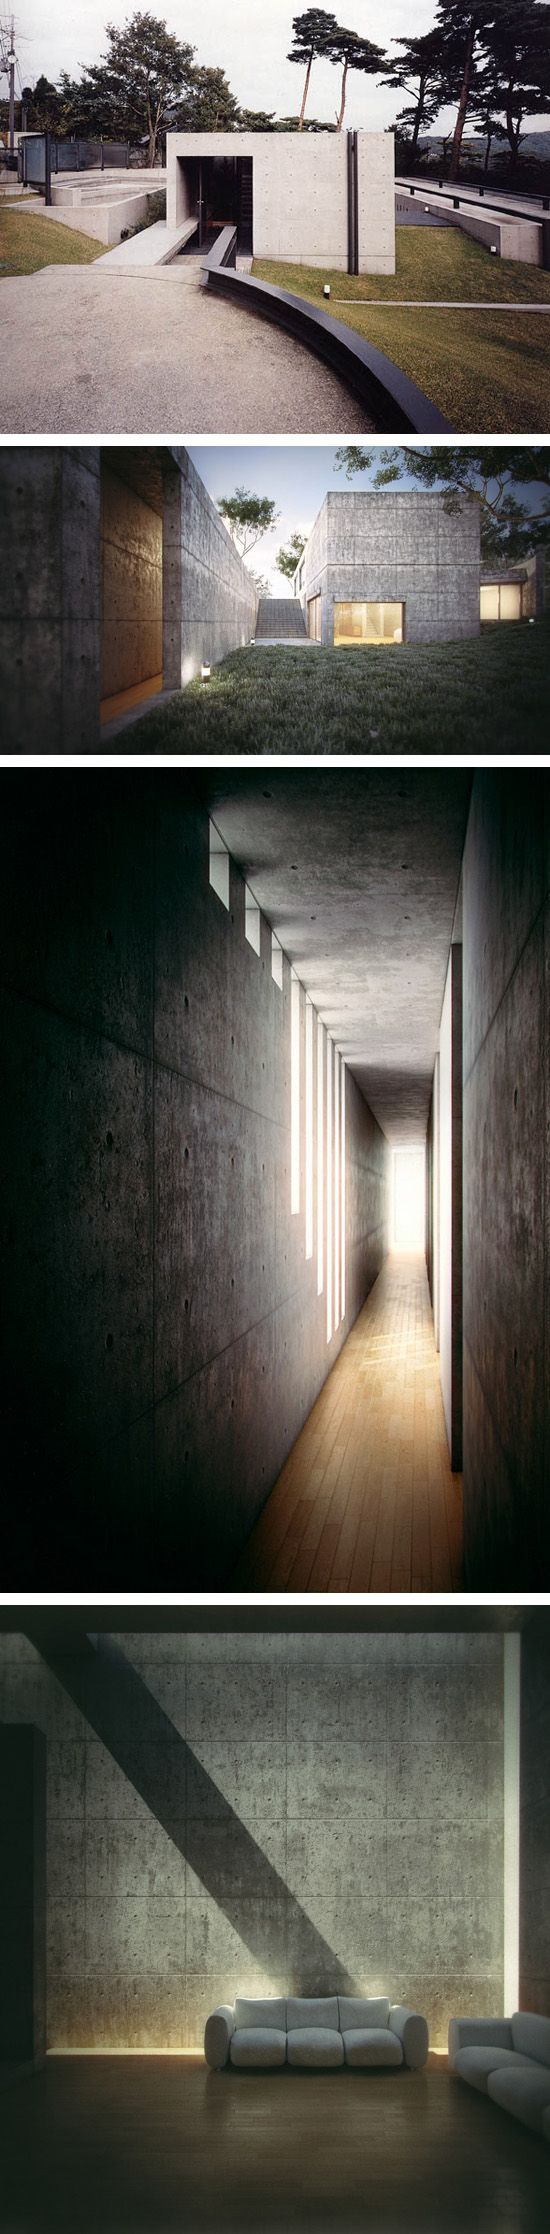 Tadao Ando, concrete and light.